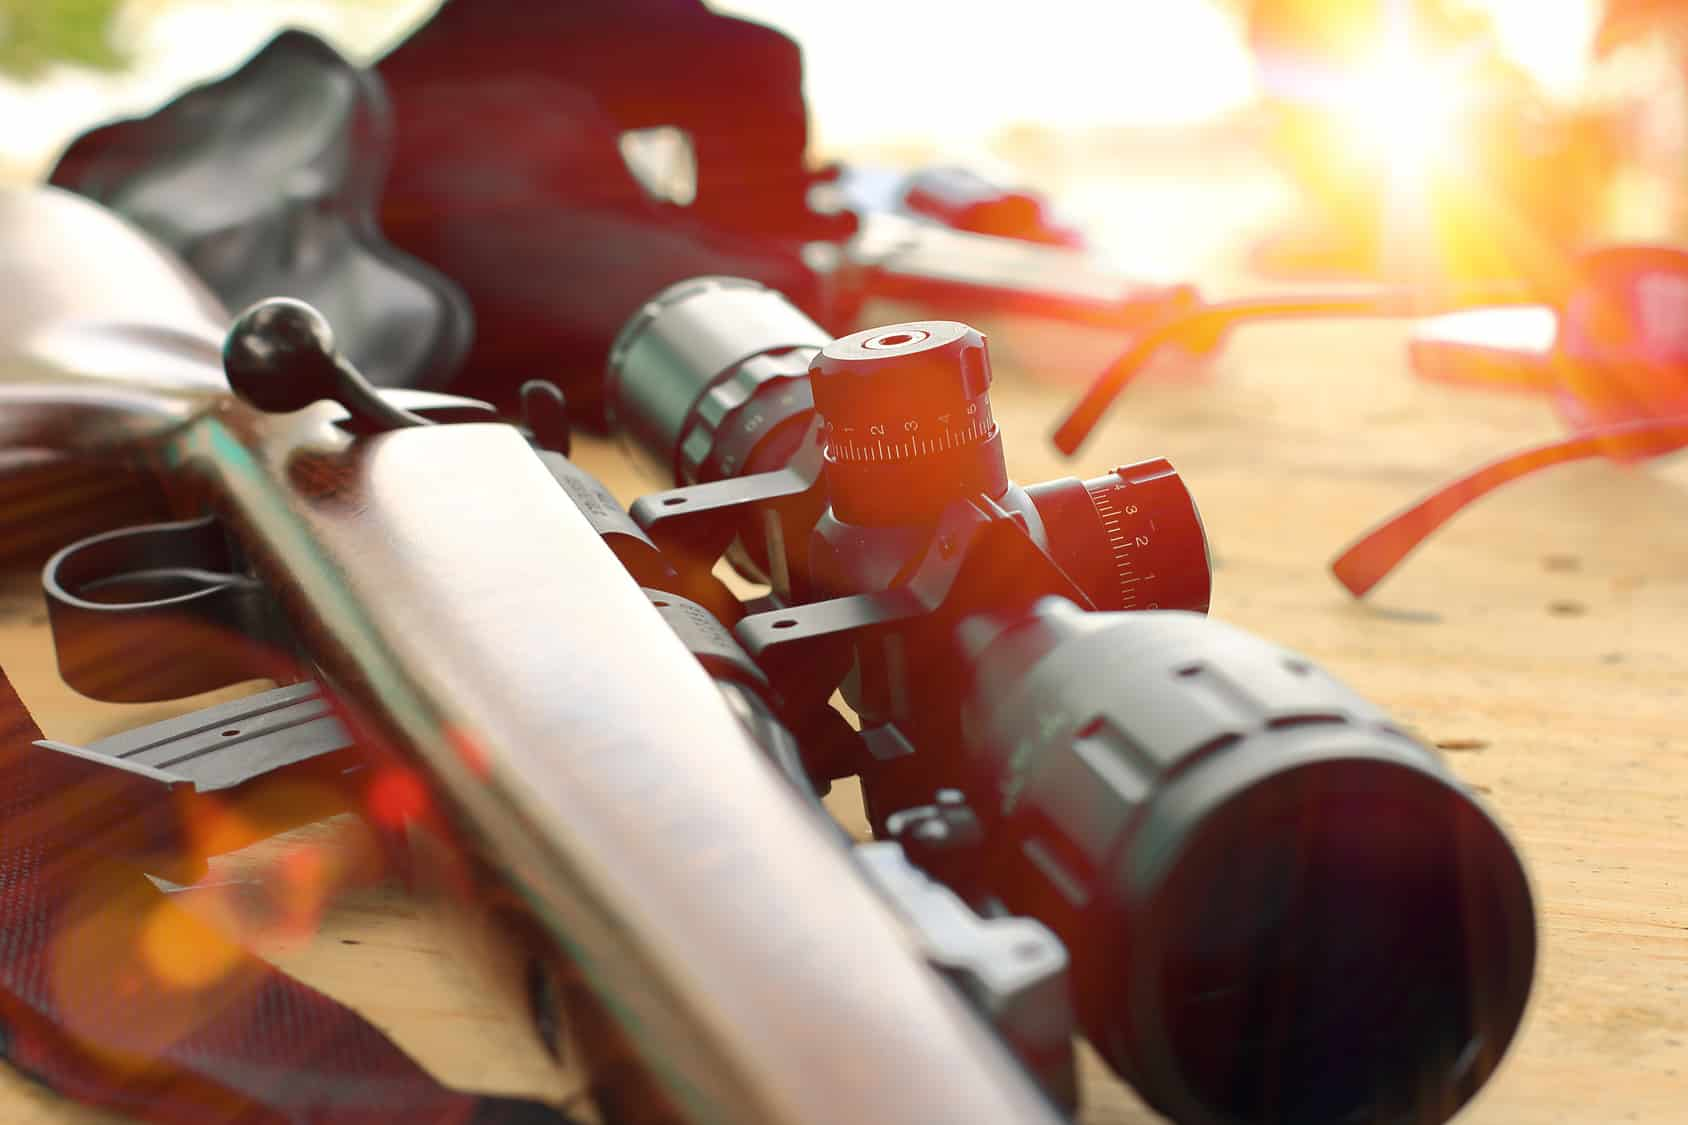 The Best Scopes For .308 Rifles - Full 2019 Buyer's Guide